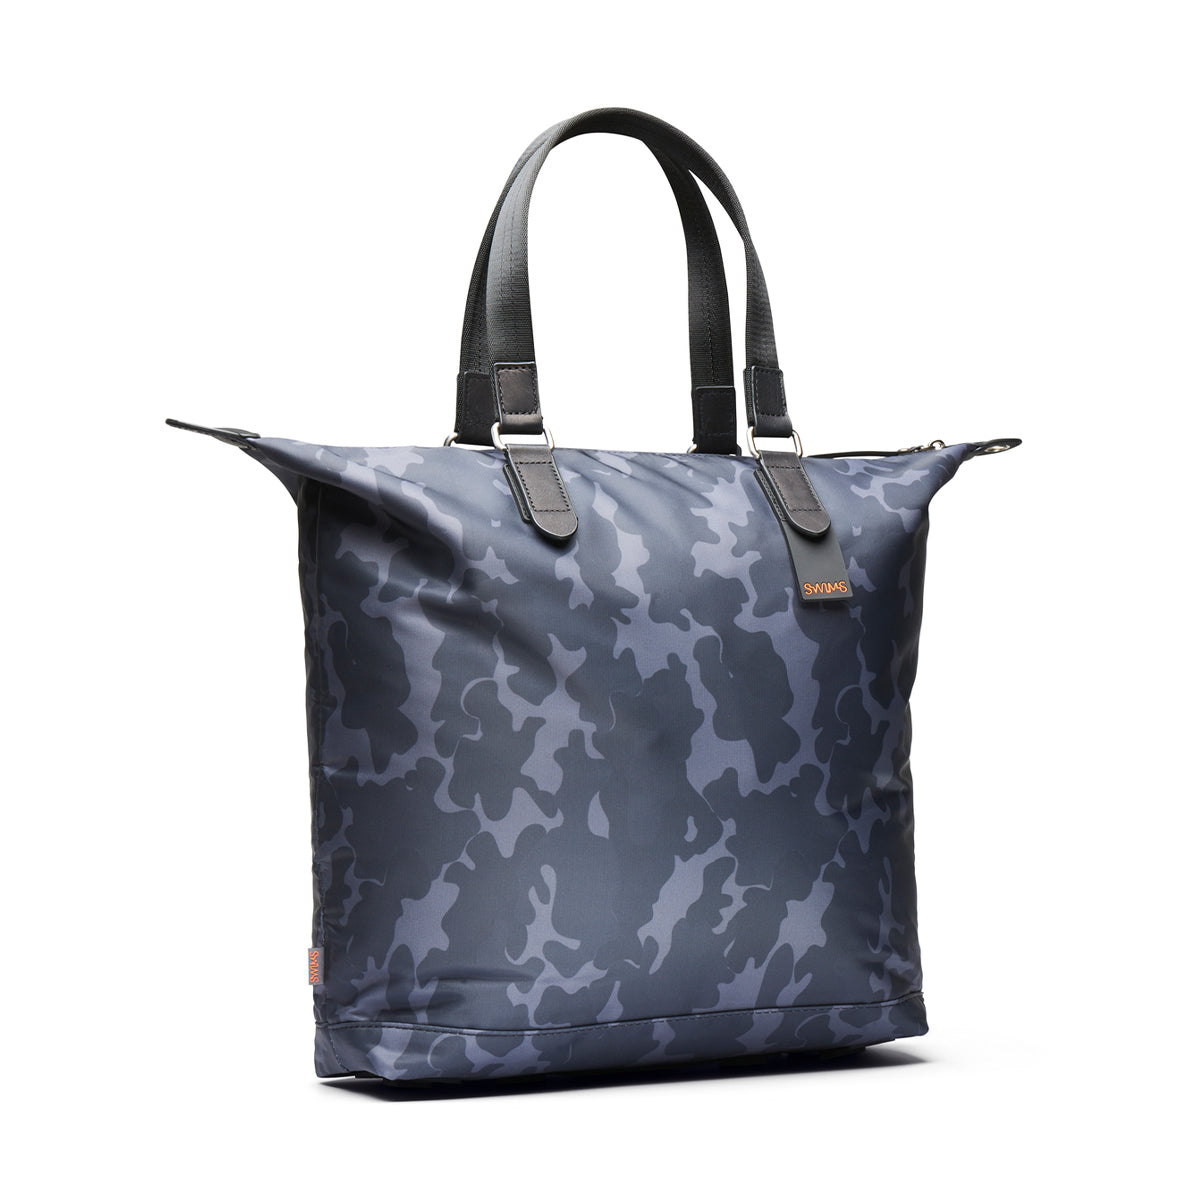 Tote Camo Printed Bag - background::white,variant::camo